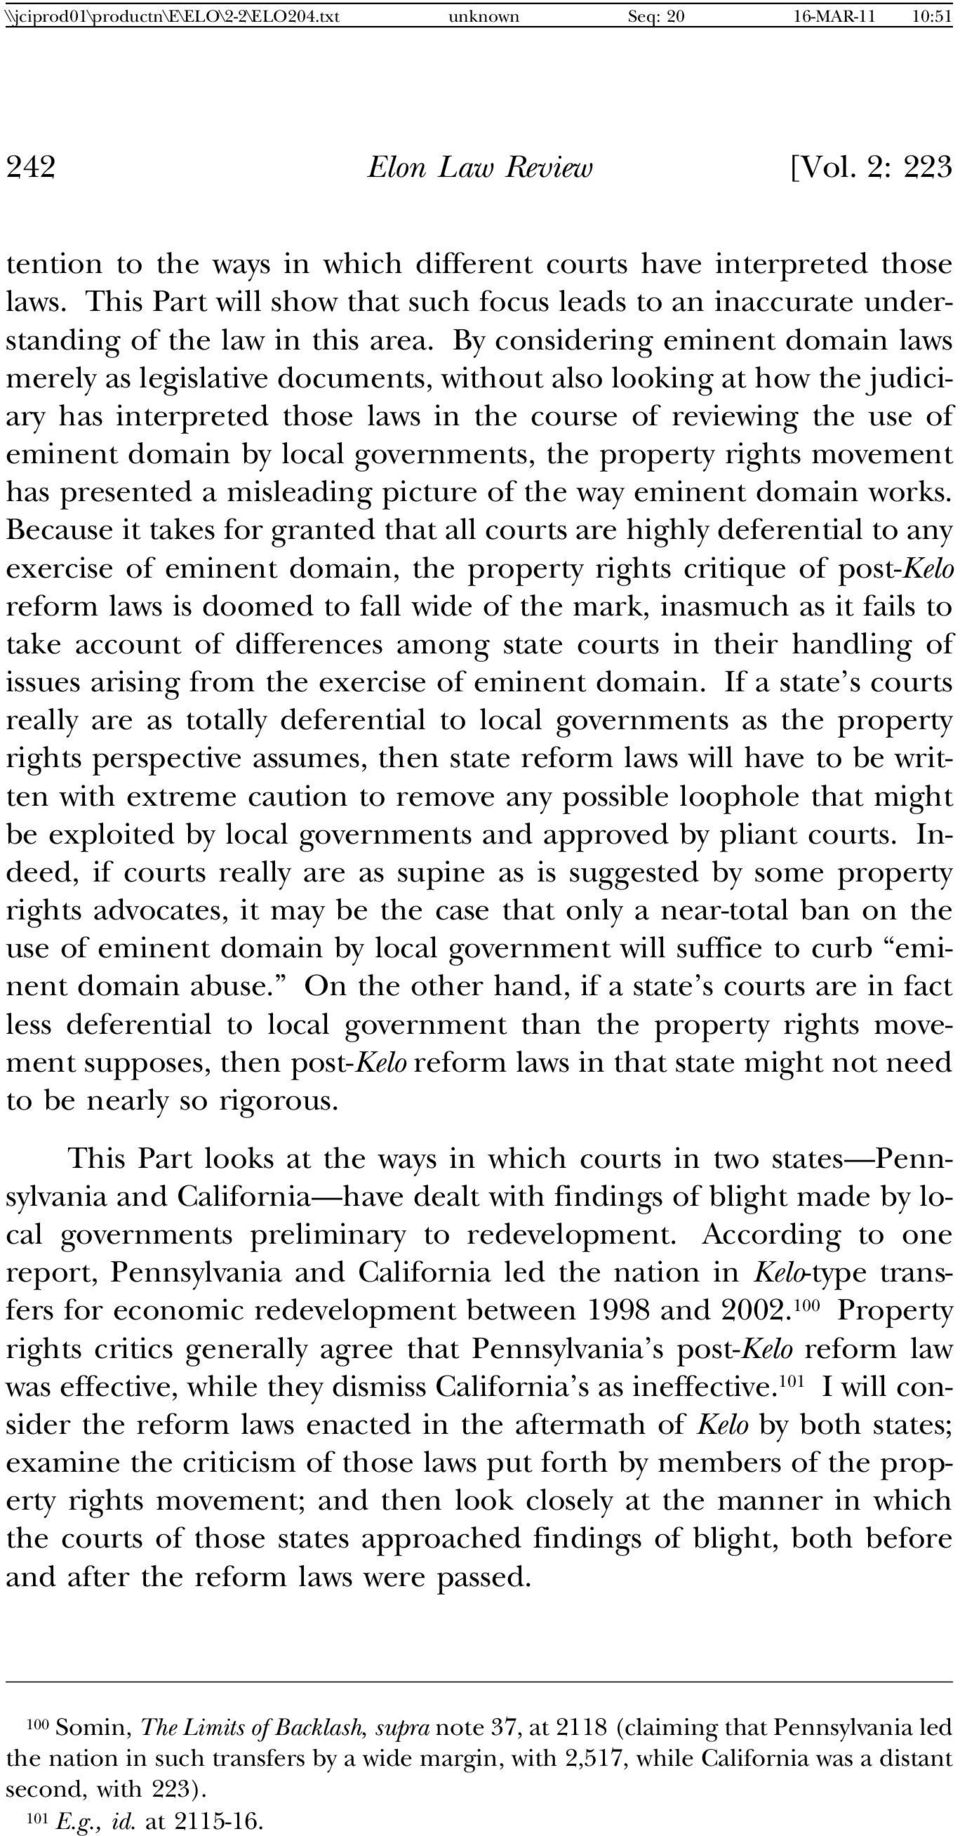 By considering eminent domain laws merely as legislative documents, without also looking at how the judiciary has interpreted those laws in the course of reviewing the use of eminent domain by local